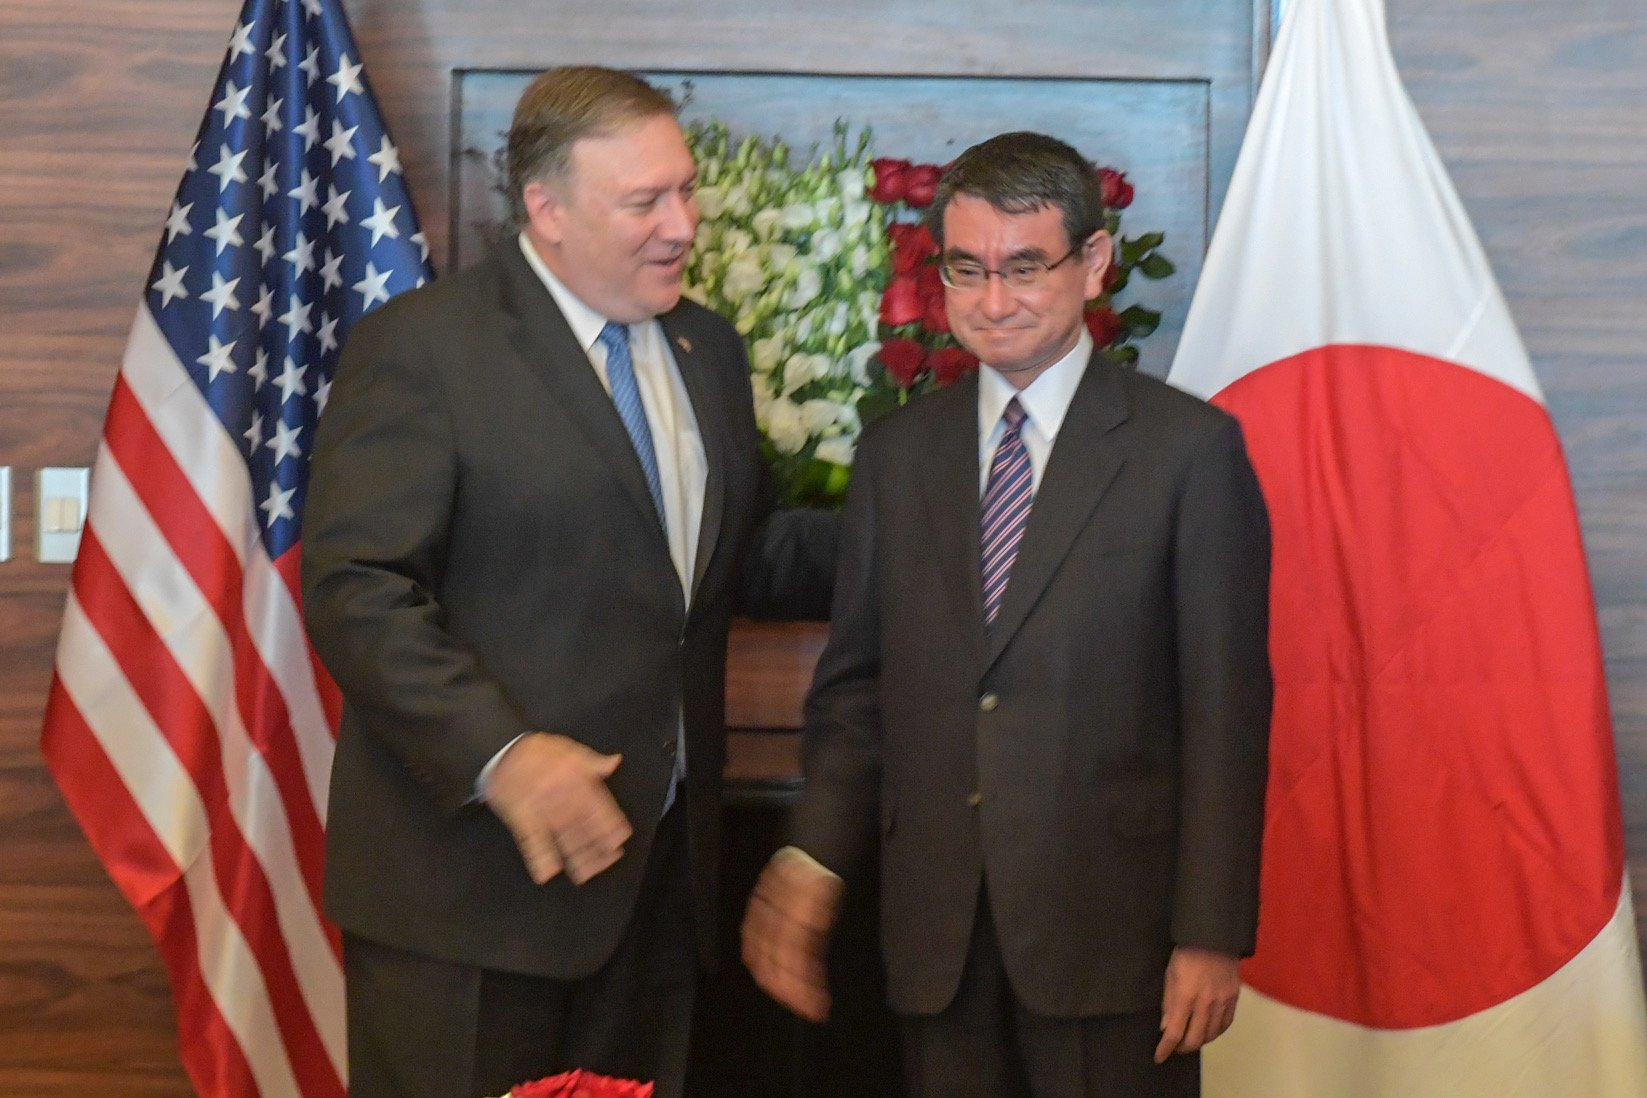 Secretary of State Mike Pompeo met with Japanese Foreign Minister @konotaromp in Amman, #Jordan today. https://t.co/AIySVRUZQb